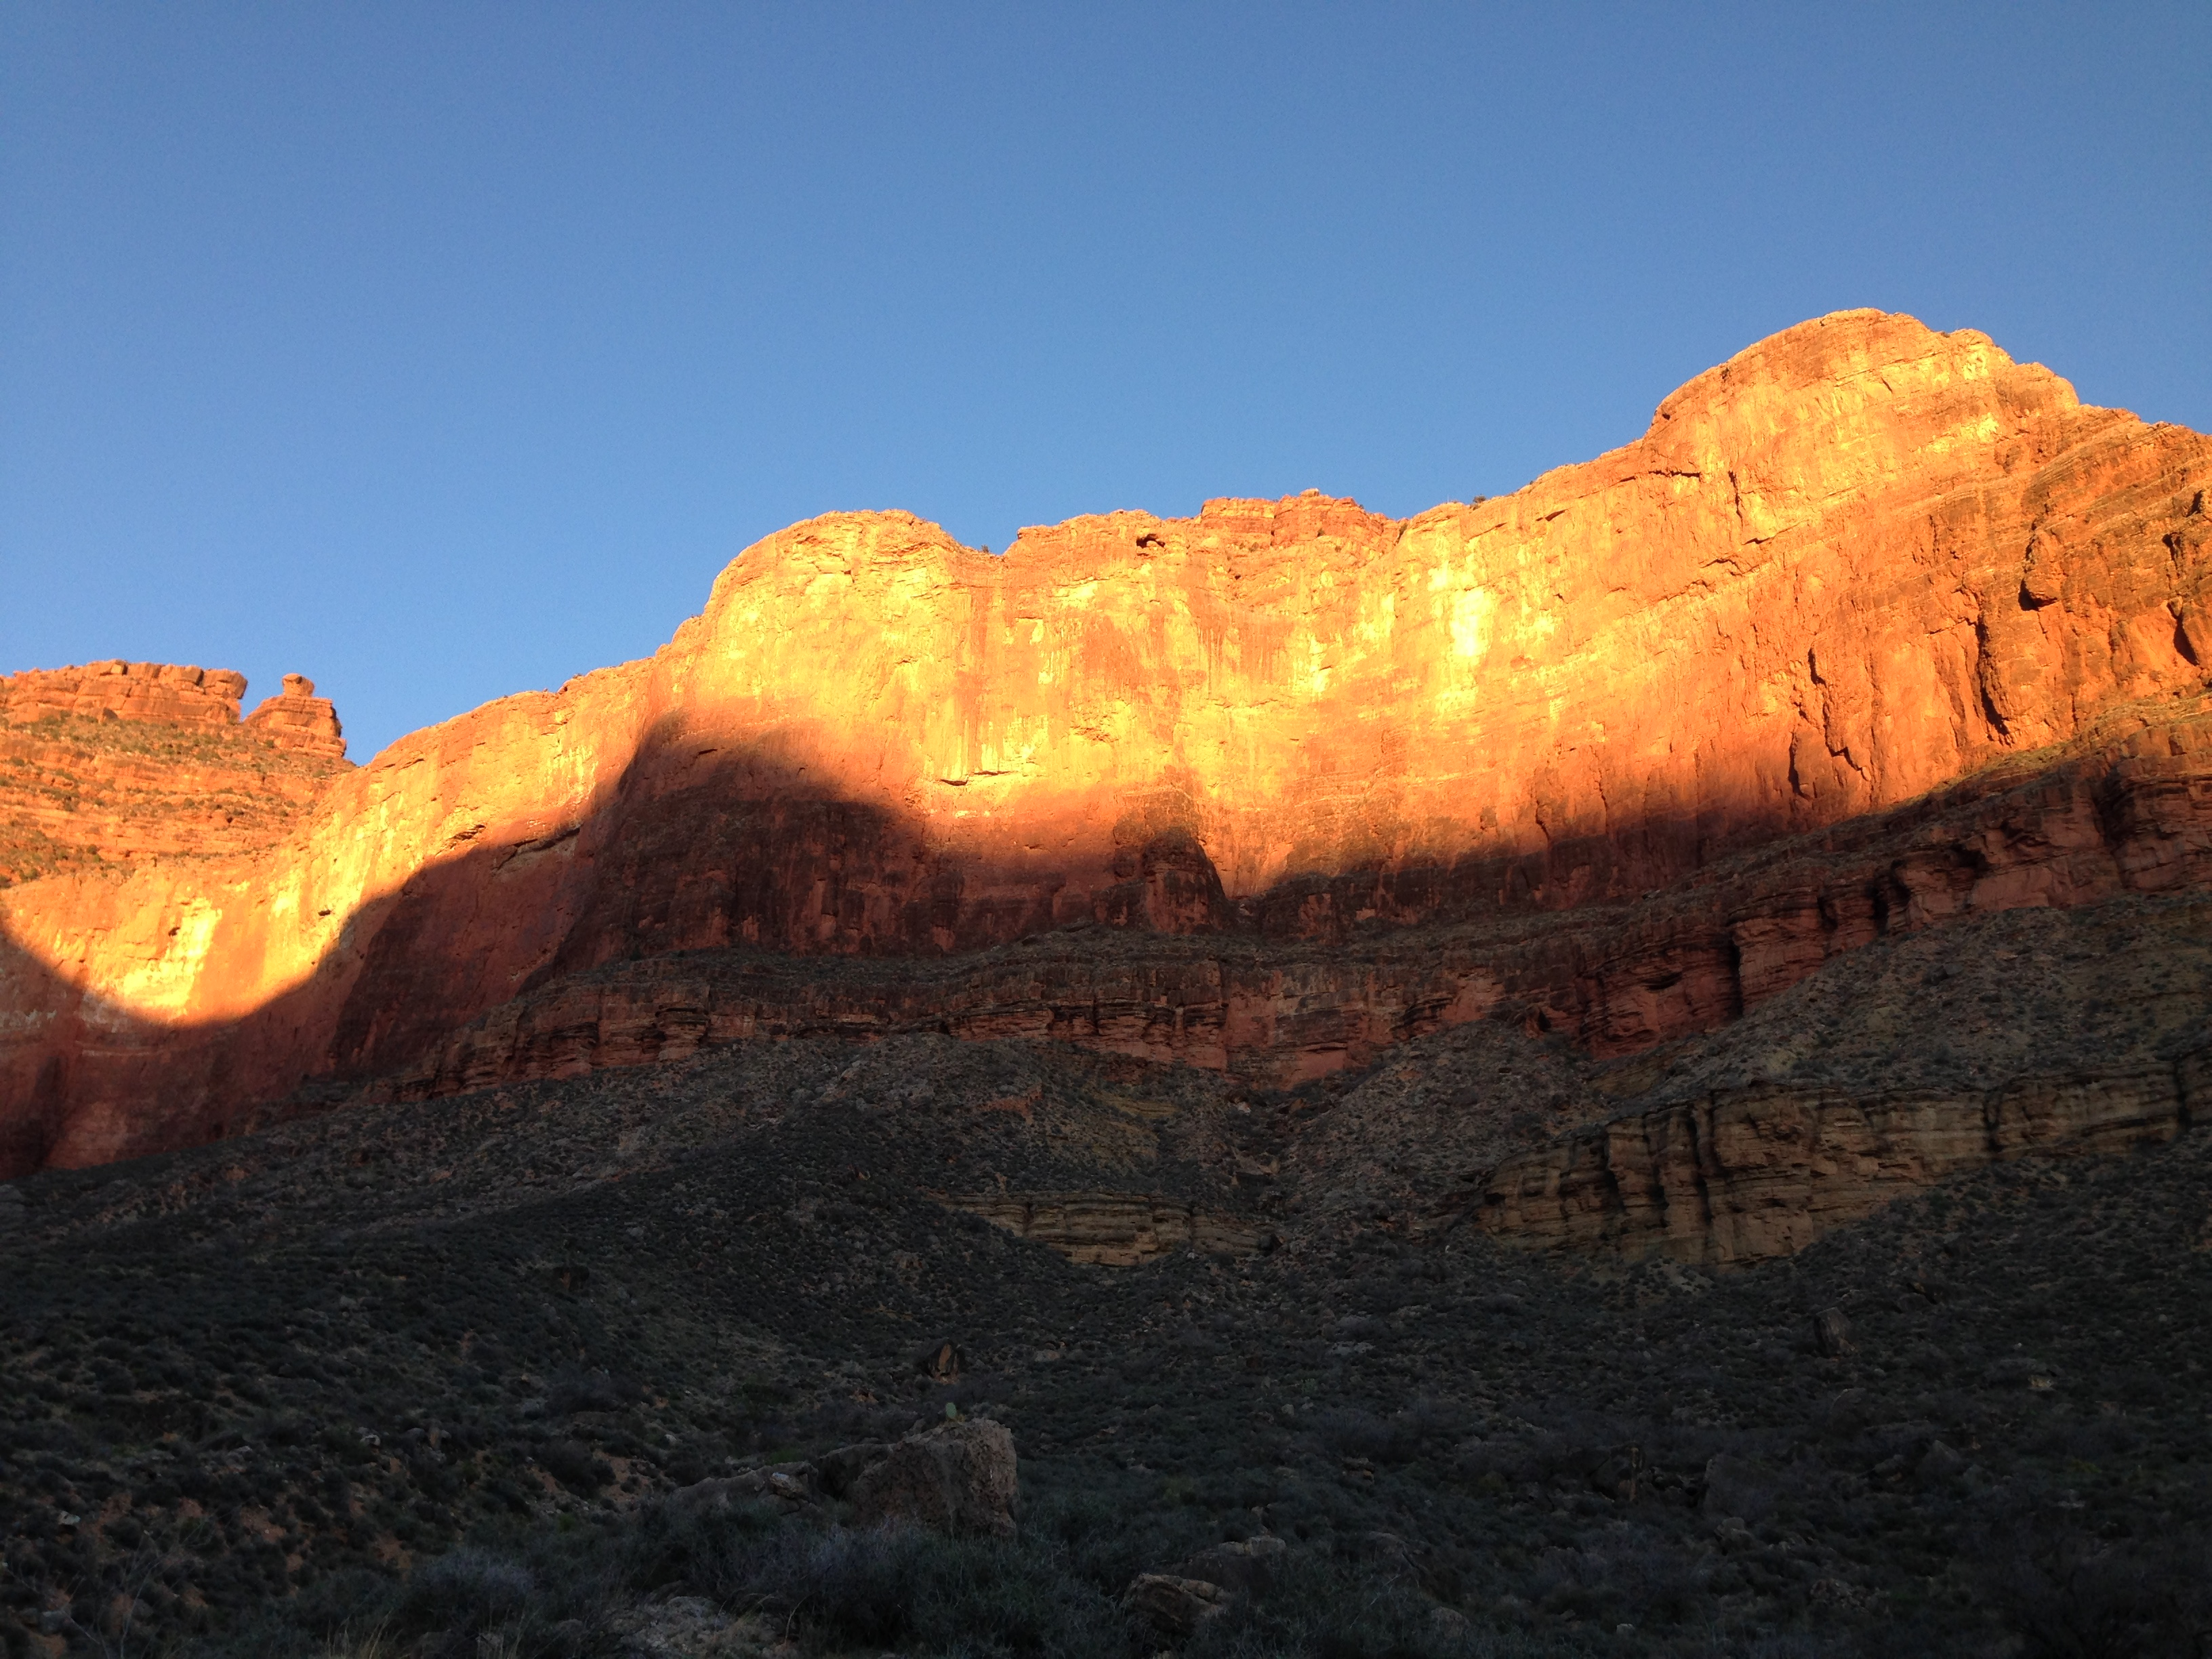 Sunrise in the canyon